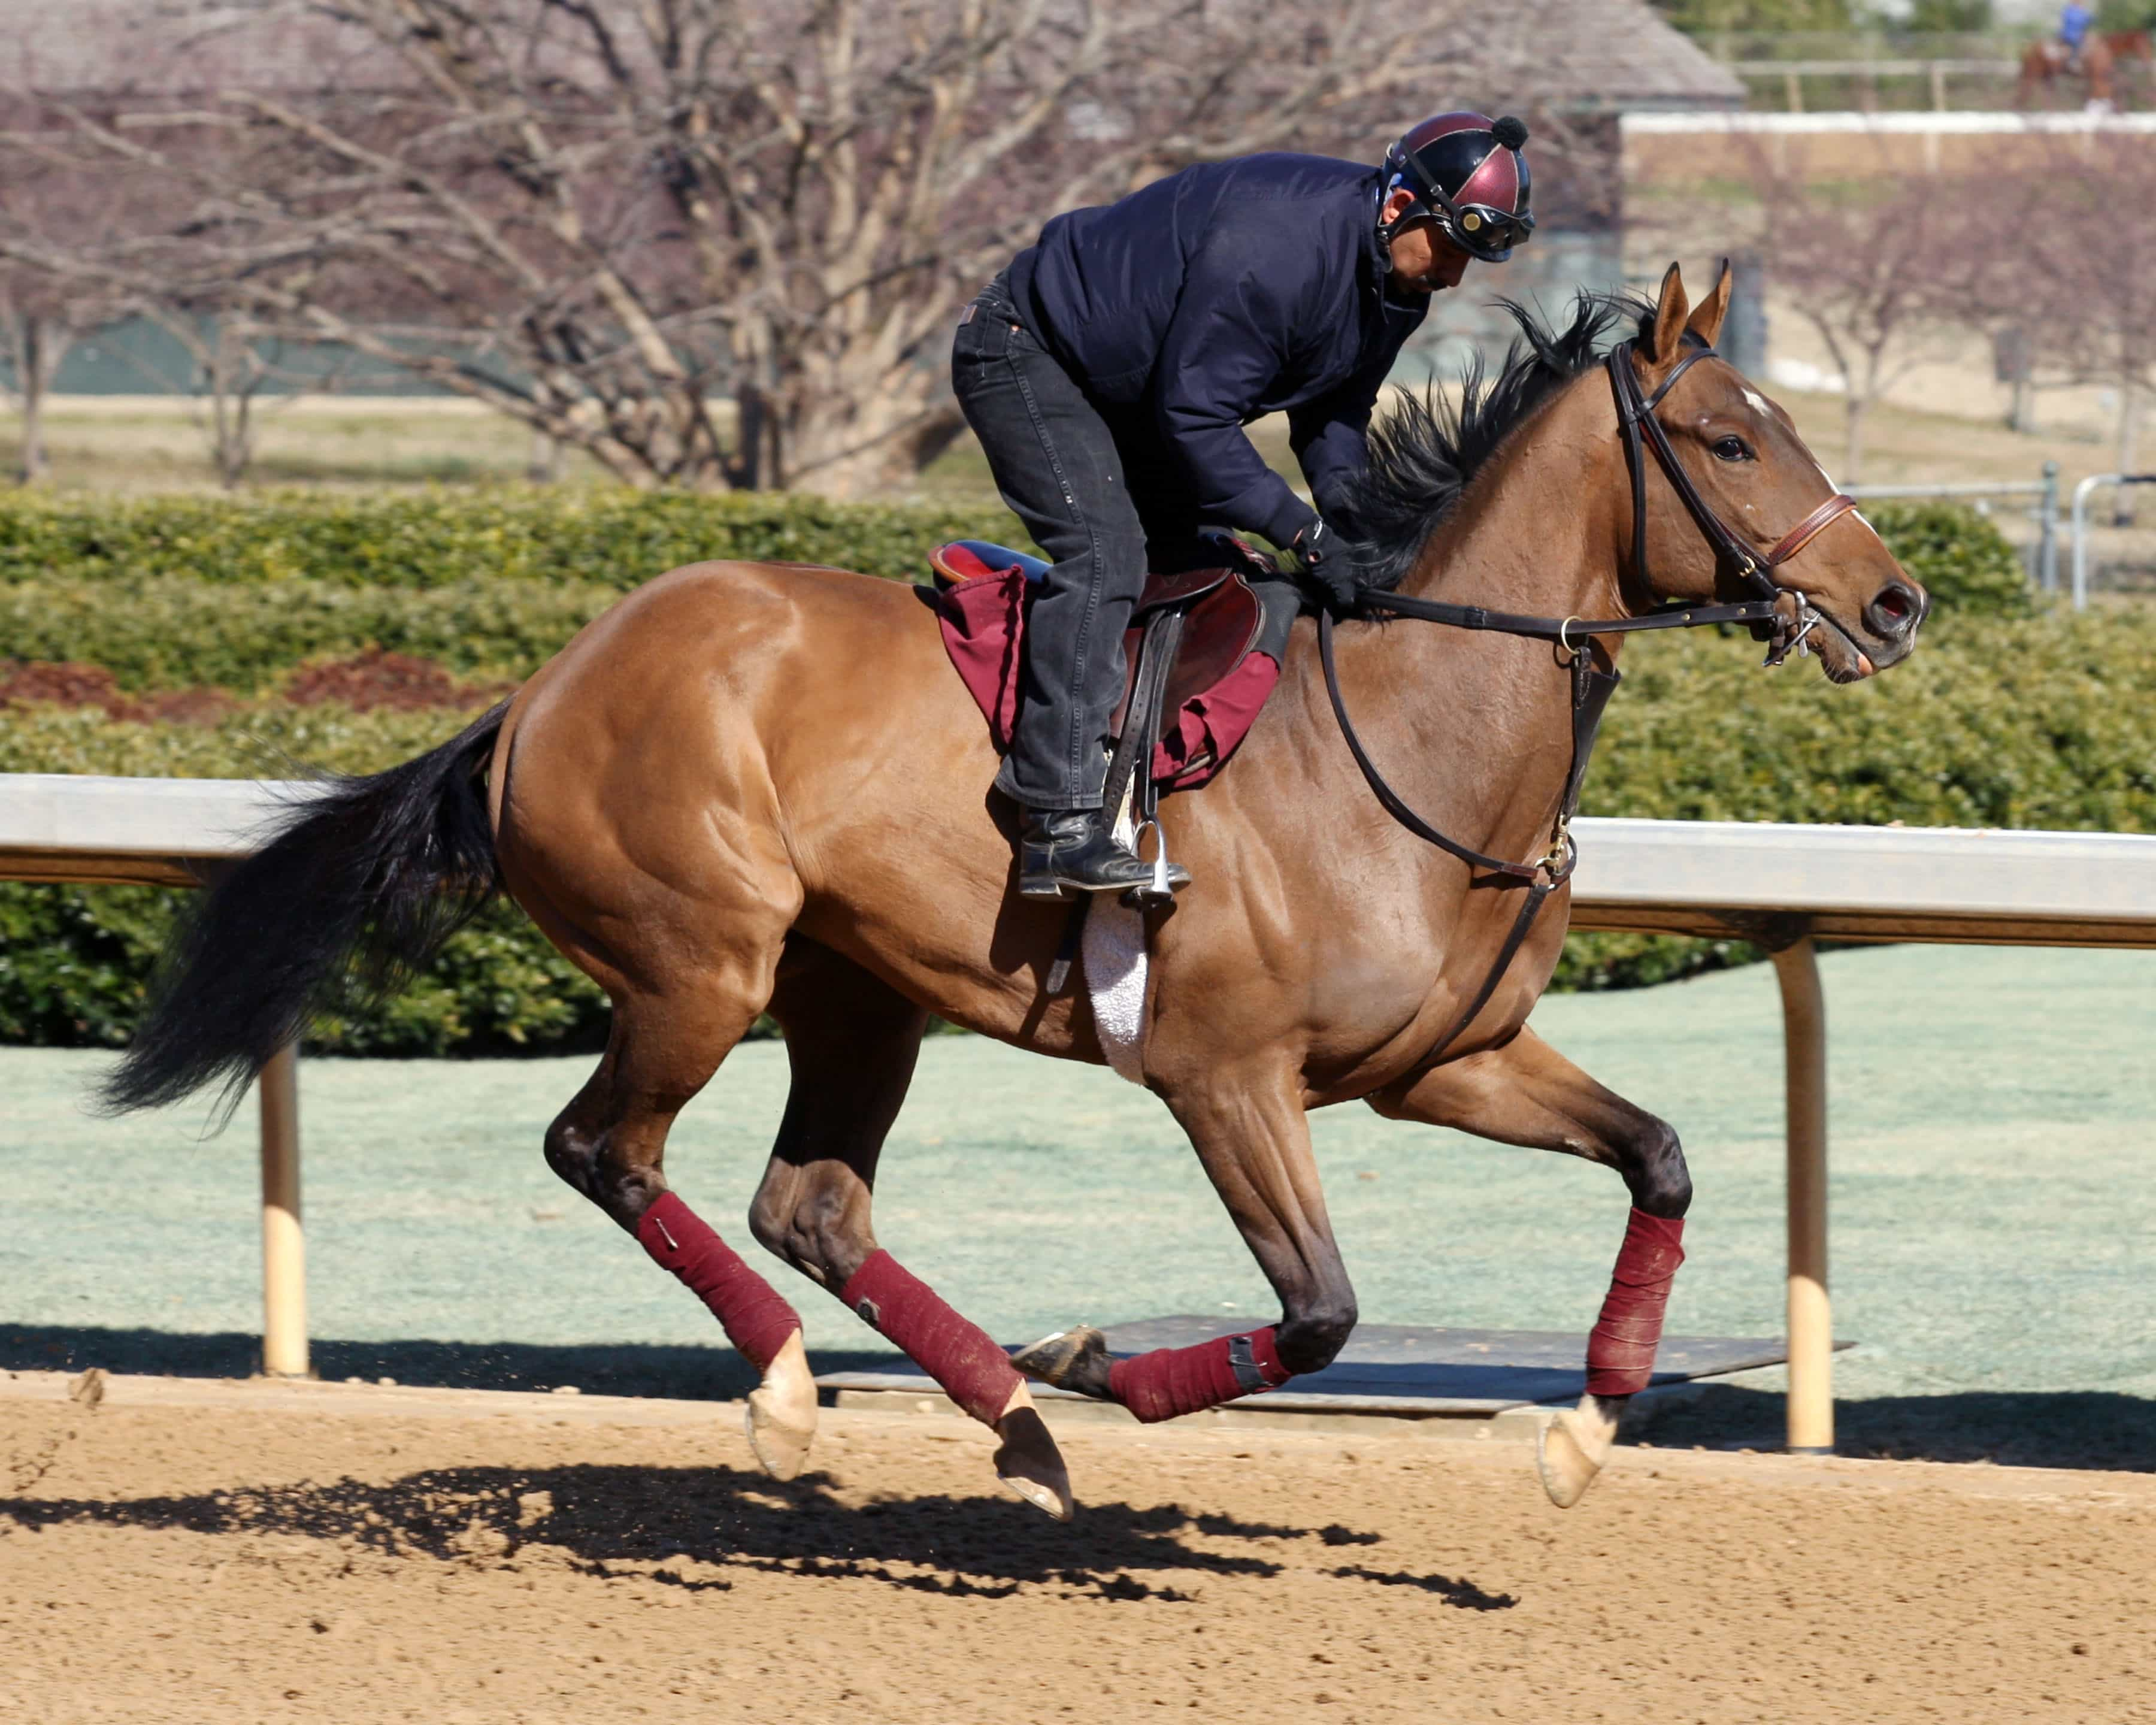 Hillbilly Royalty-OP-Workouts-021915-001- Photo credit: Oaklawn/Coady Photography